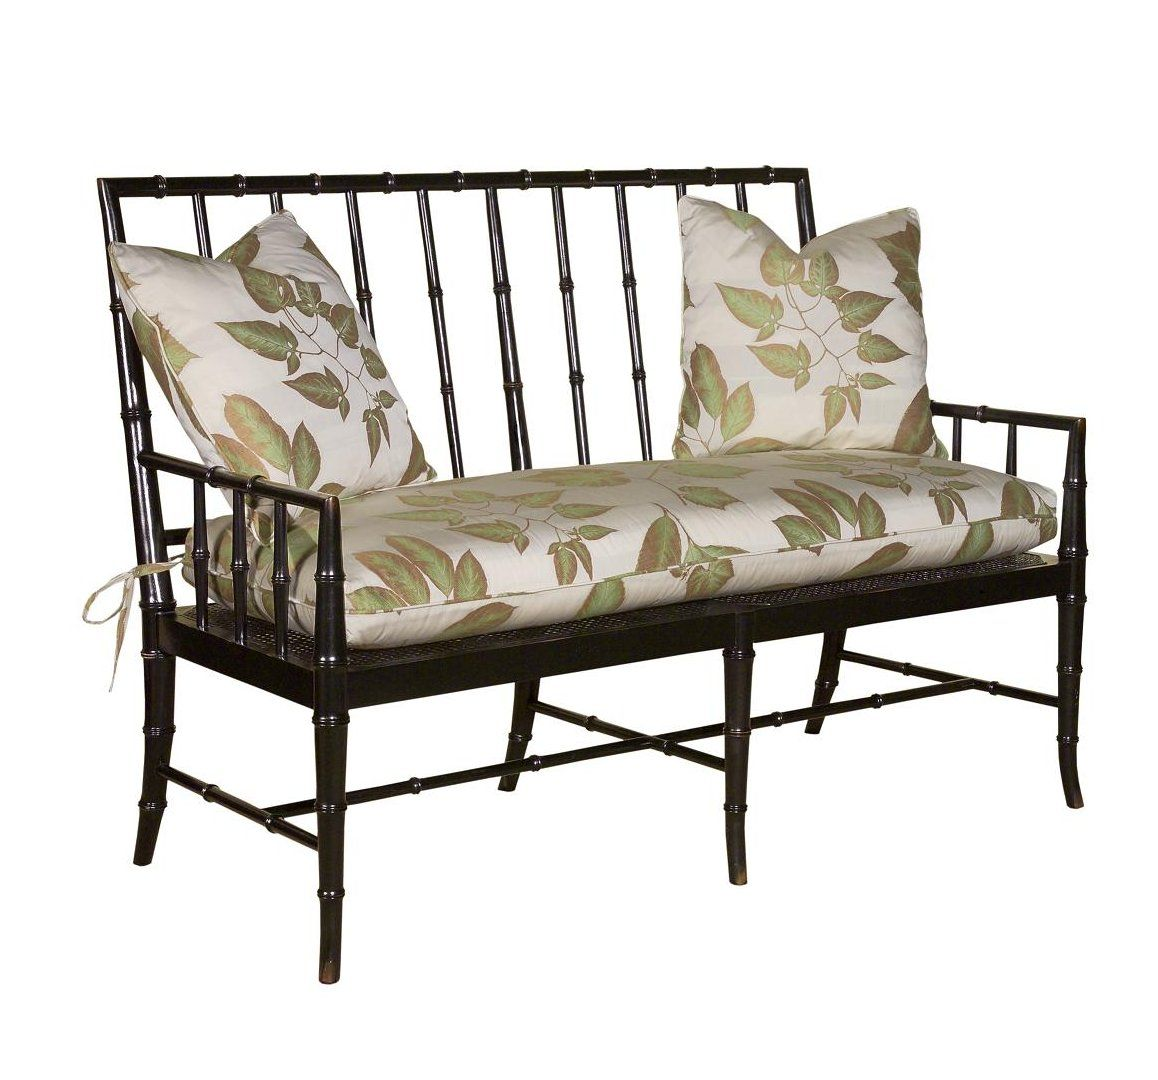 Woodbridge Regency Faux Bamboo Bench 56x26x40 In Black Or Red Finishes Need To Visualize